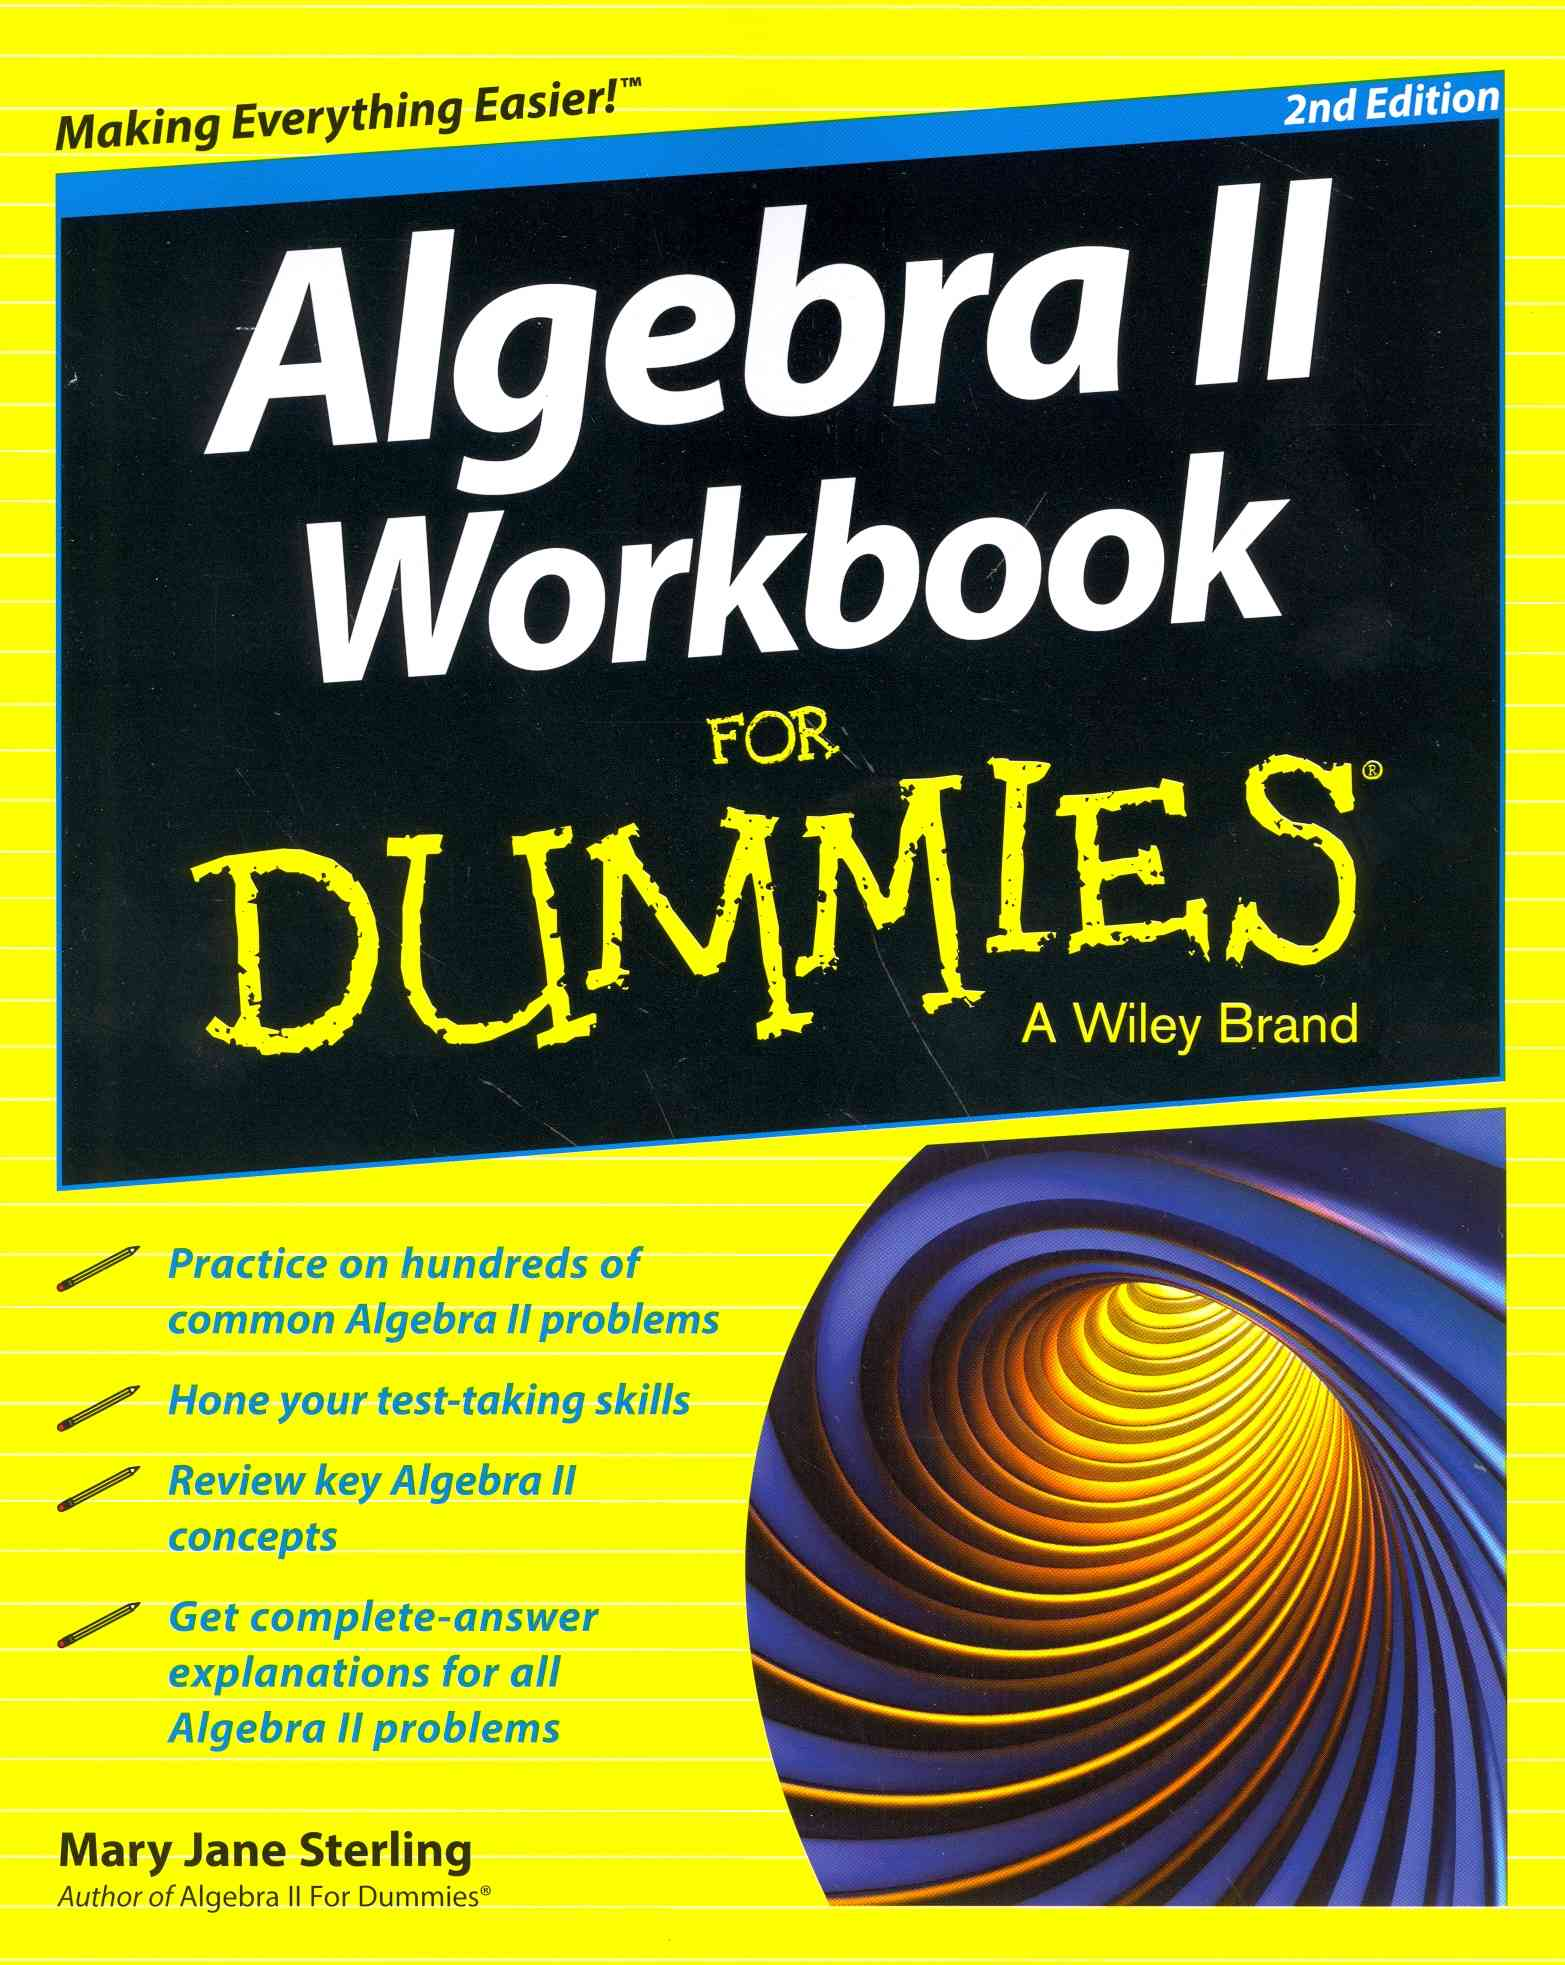 Algebra II Workbook for Dummies By Consumer Dummies (COR)